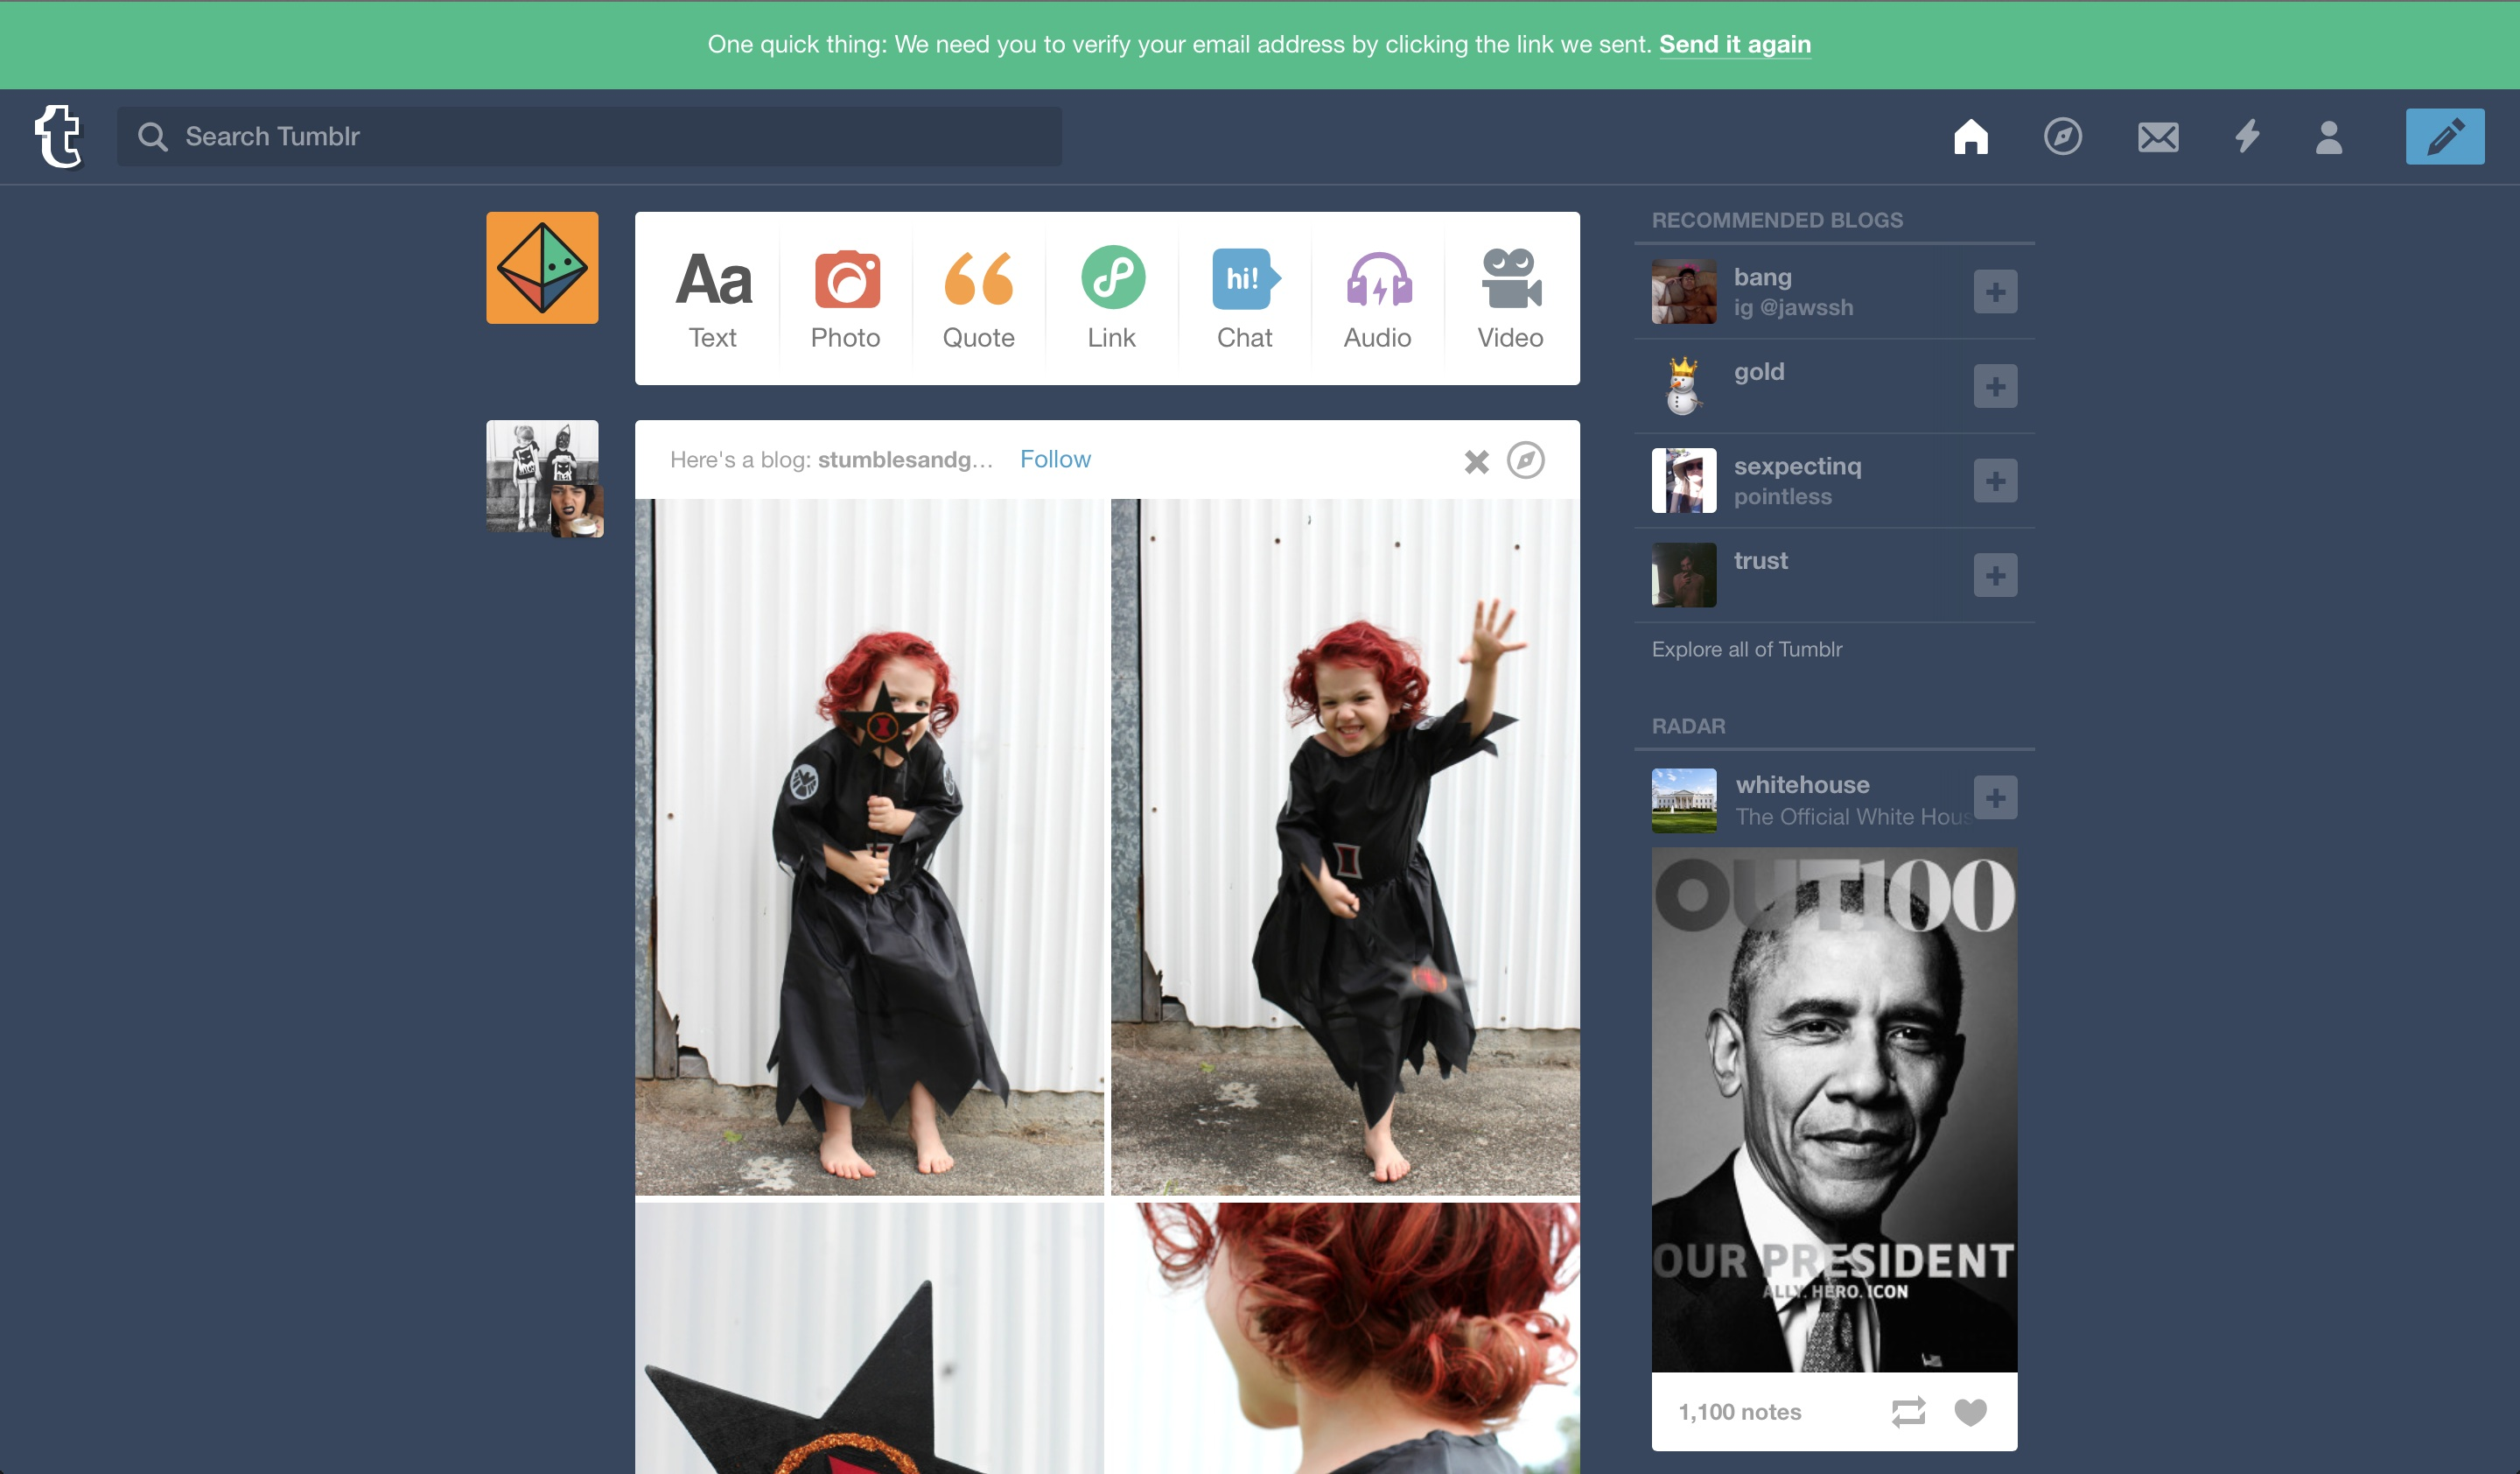 Tumblr user onboarding step 5